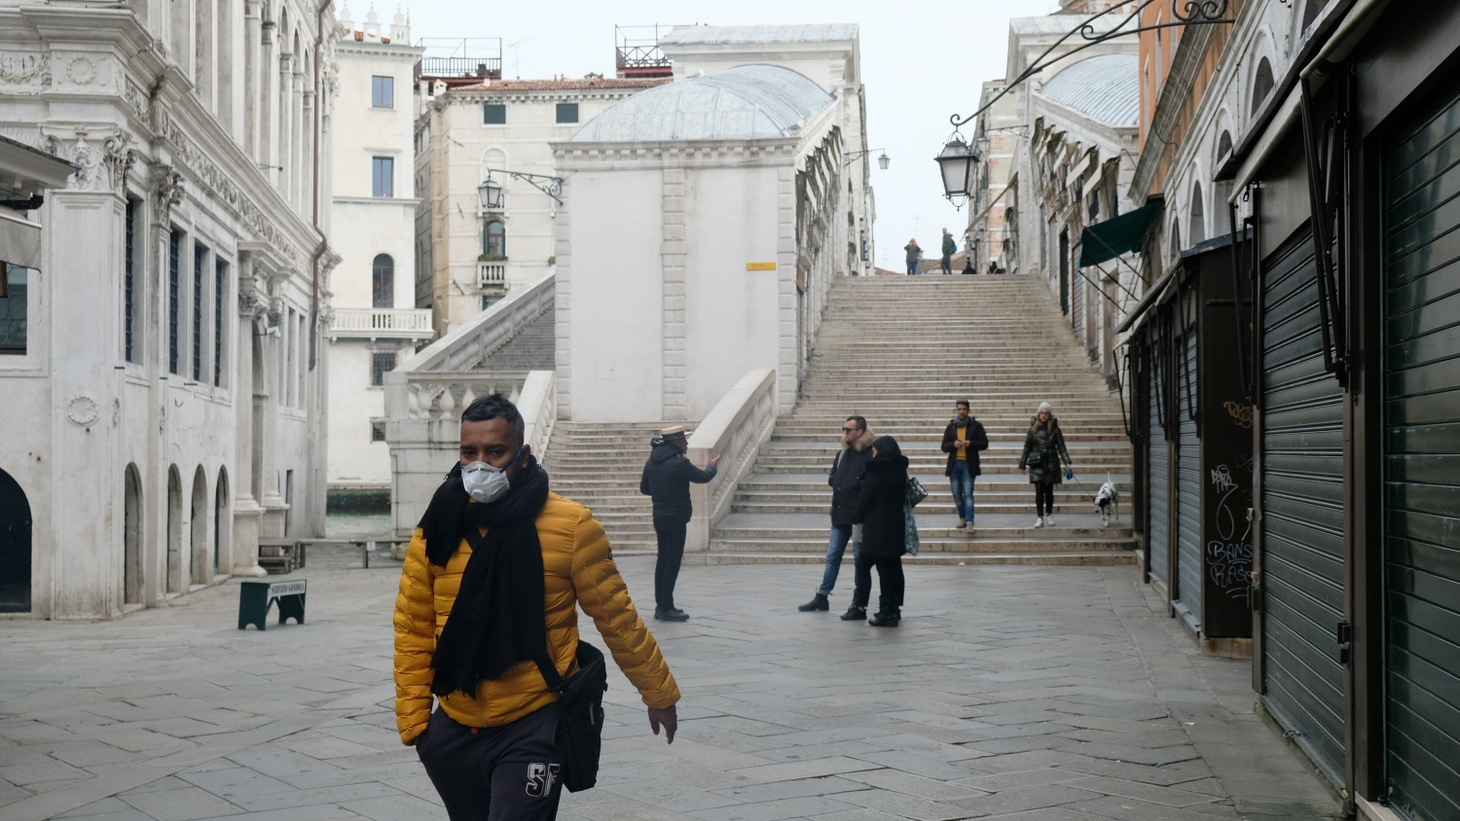 A man wearing a protective face mask walks through a street after the Italian government imposed a virtual lockdown on the north of Italy, including Venice, to try to contain a coronavirus outbreak. March 9, 2020.